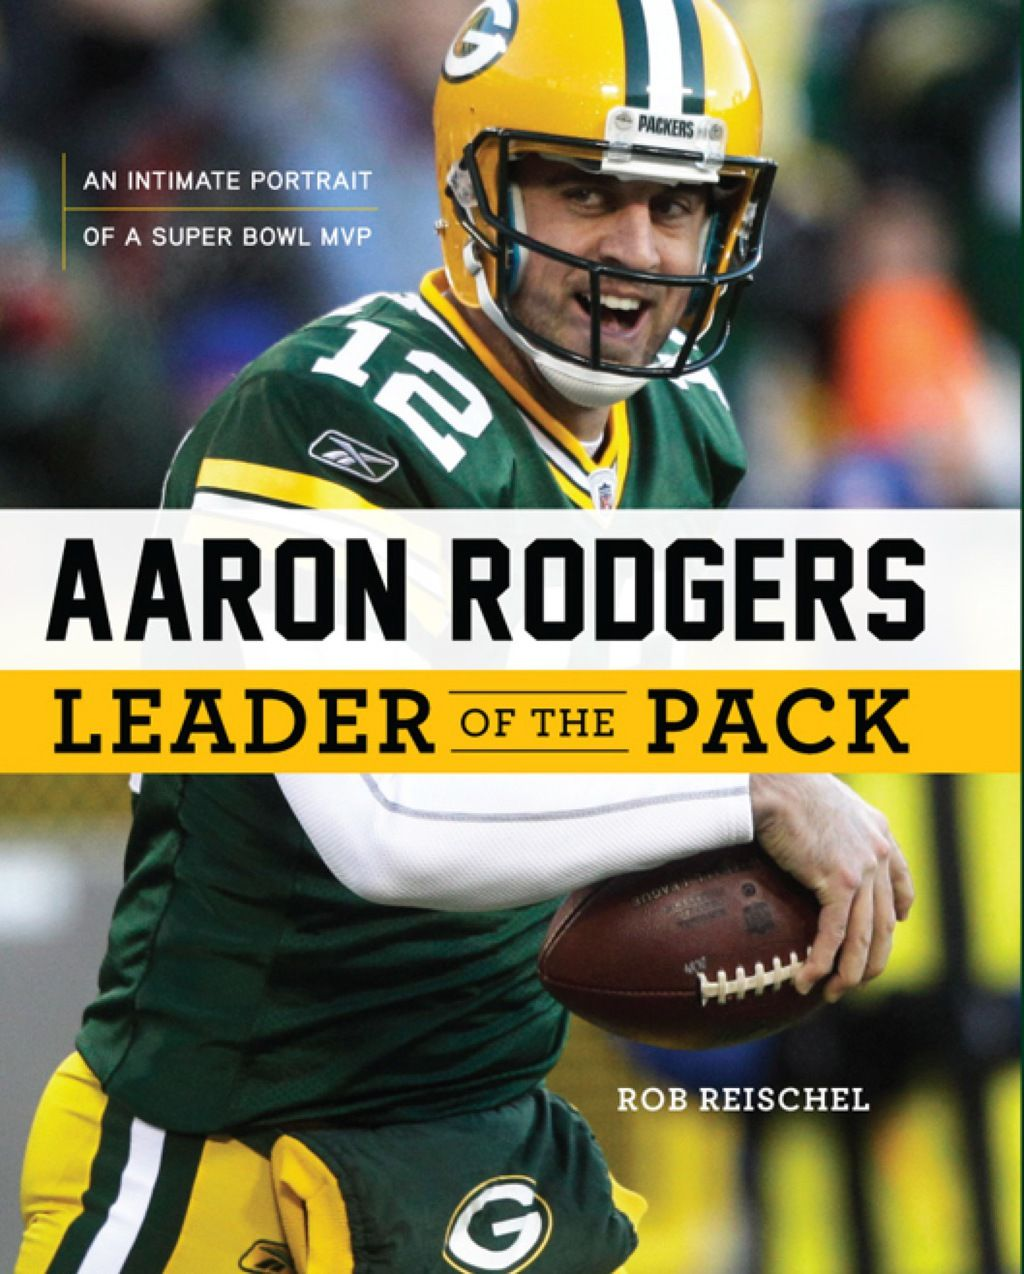 Aaron Rodgers Leader Of The Pack An Intimate Portrait Of A Super Bowl Mvp Ebook Rental In 2020 Green Bay Packers Green Bay Green Bay Packers Football